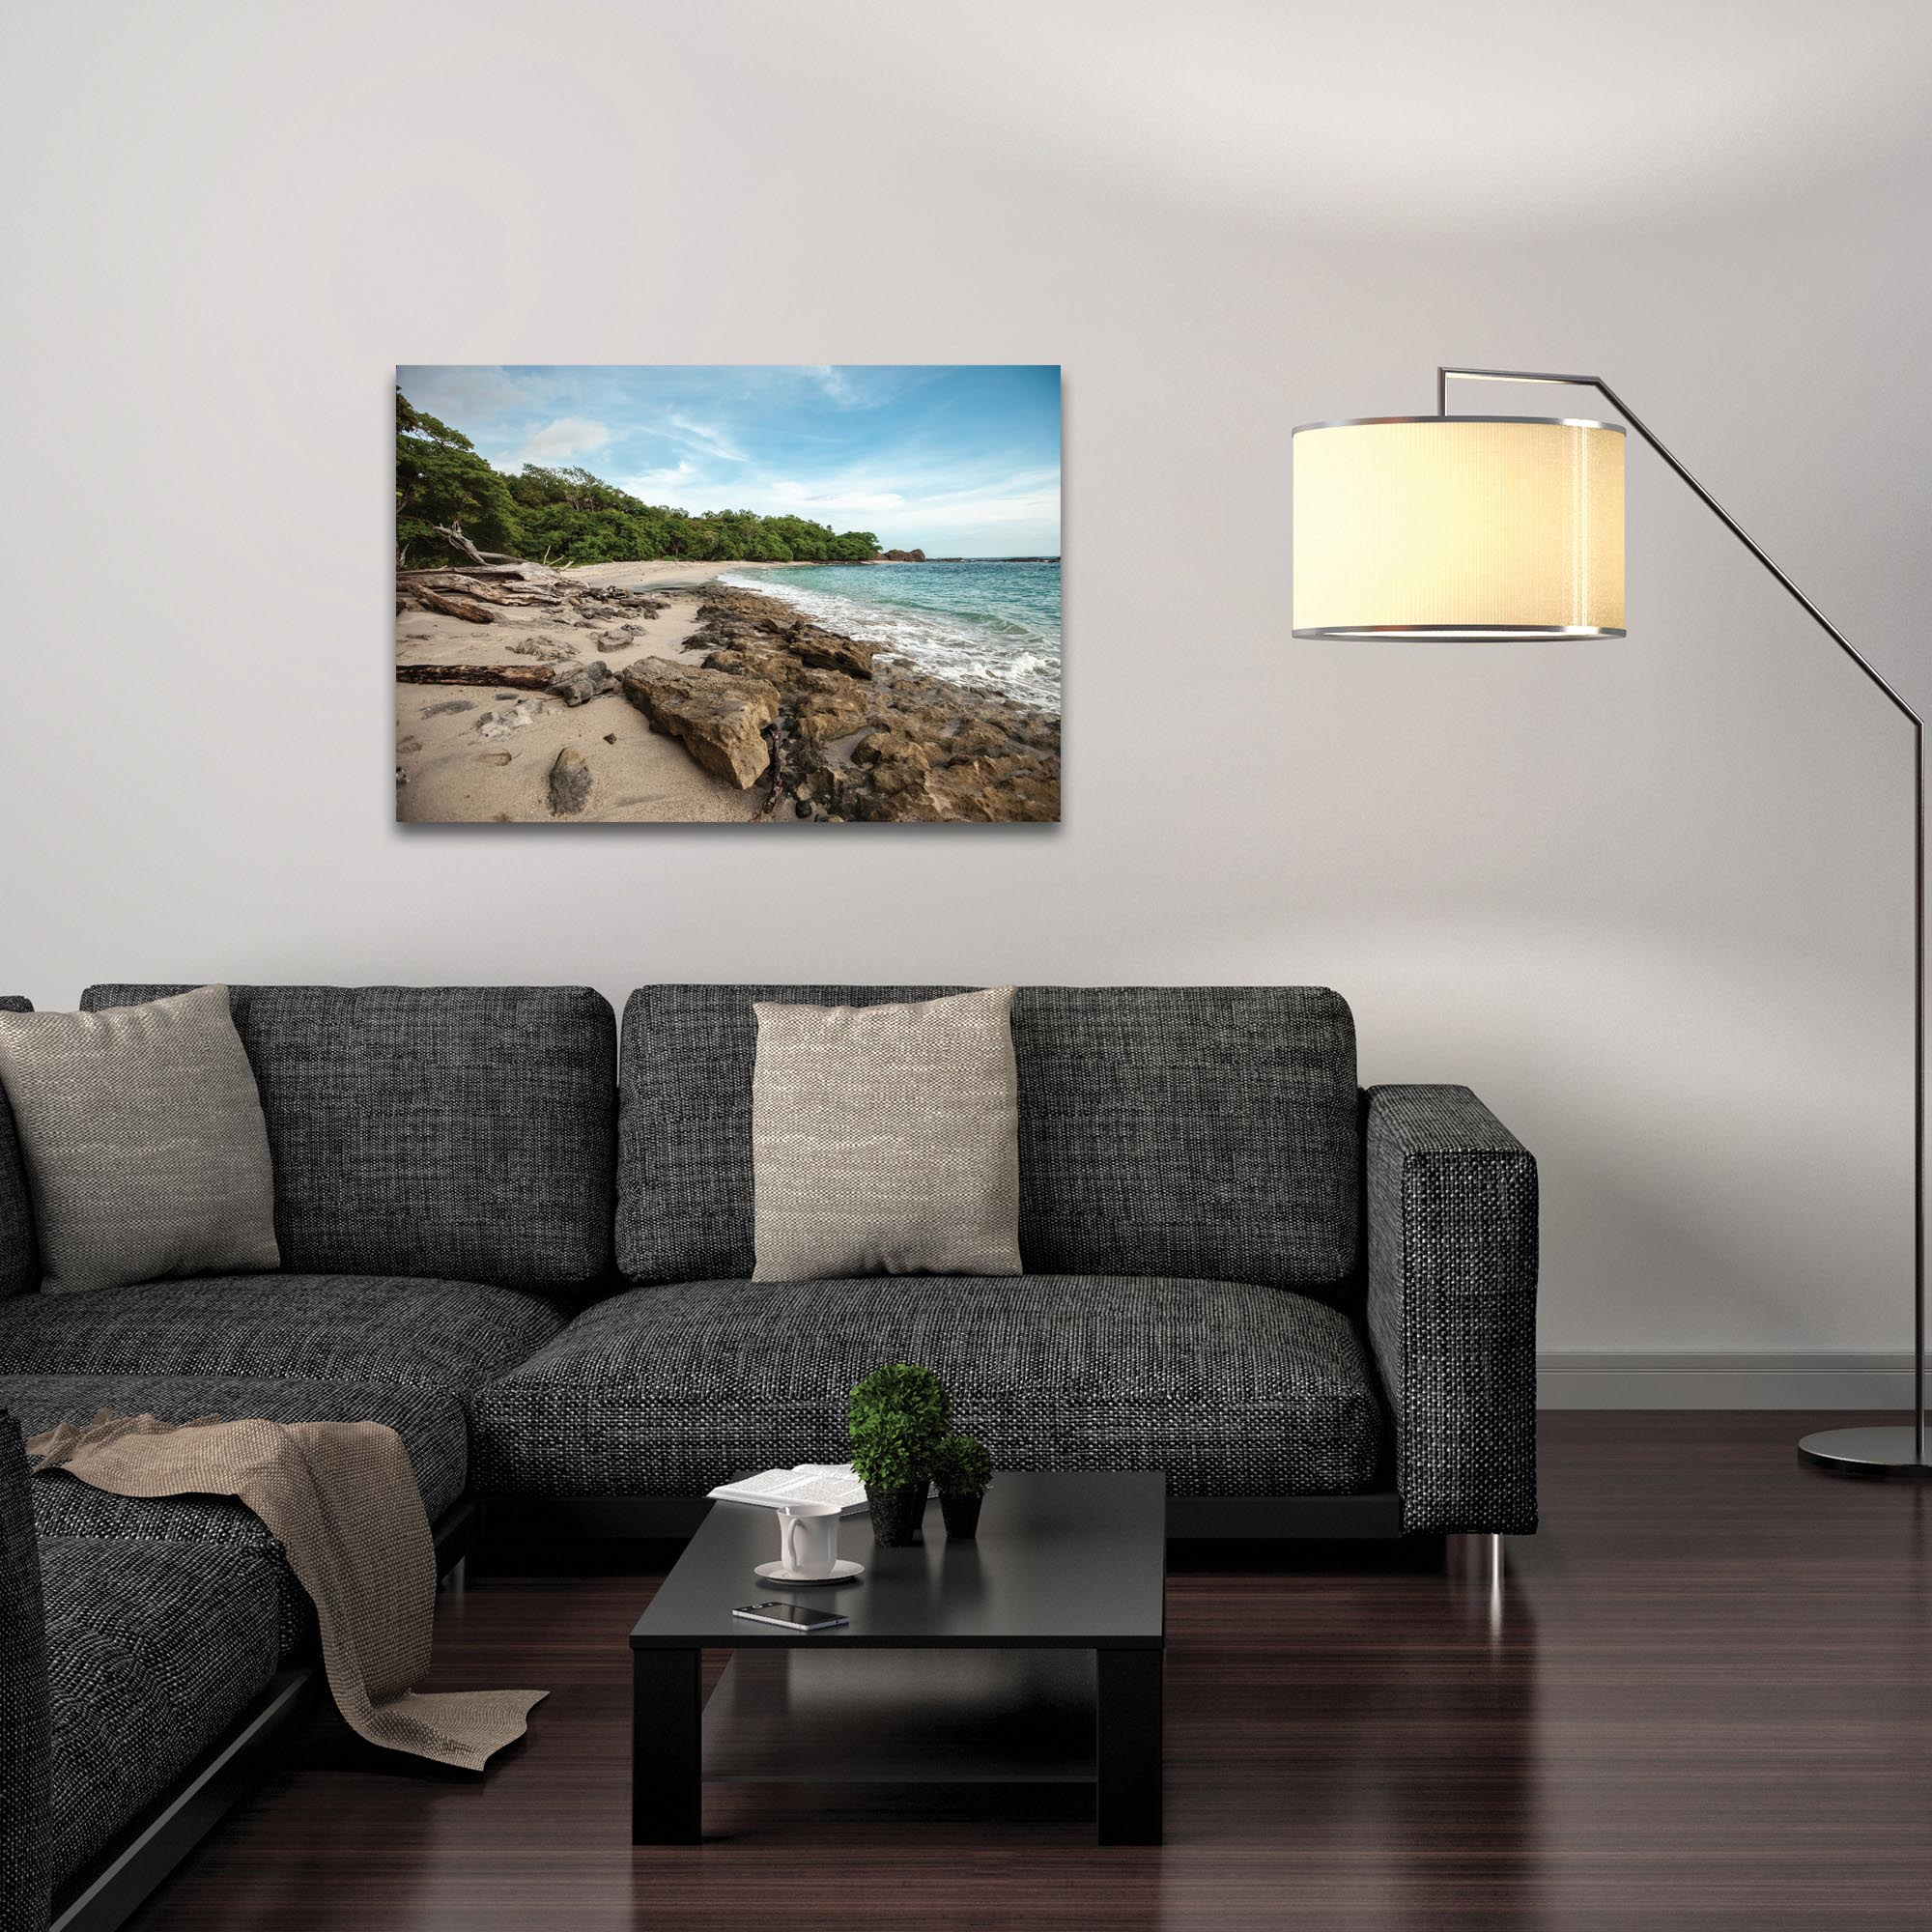 Coastal Wall Art 'Tropical Jungle' - Beach Decor on Metal or Plexiglass - Lifestyle View